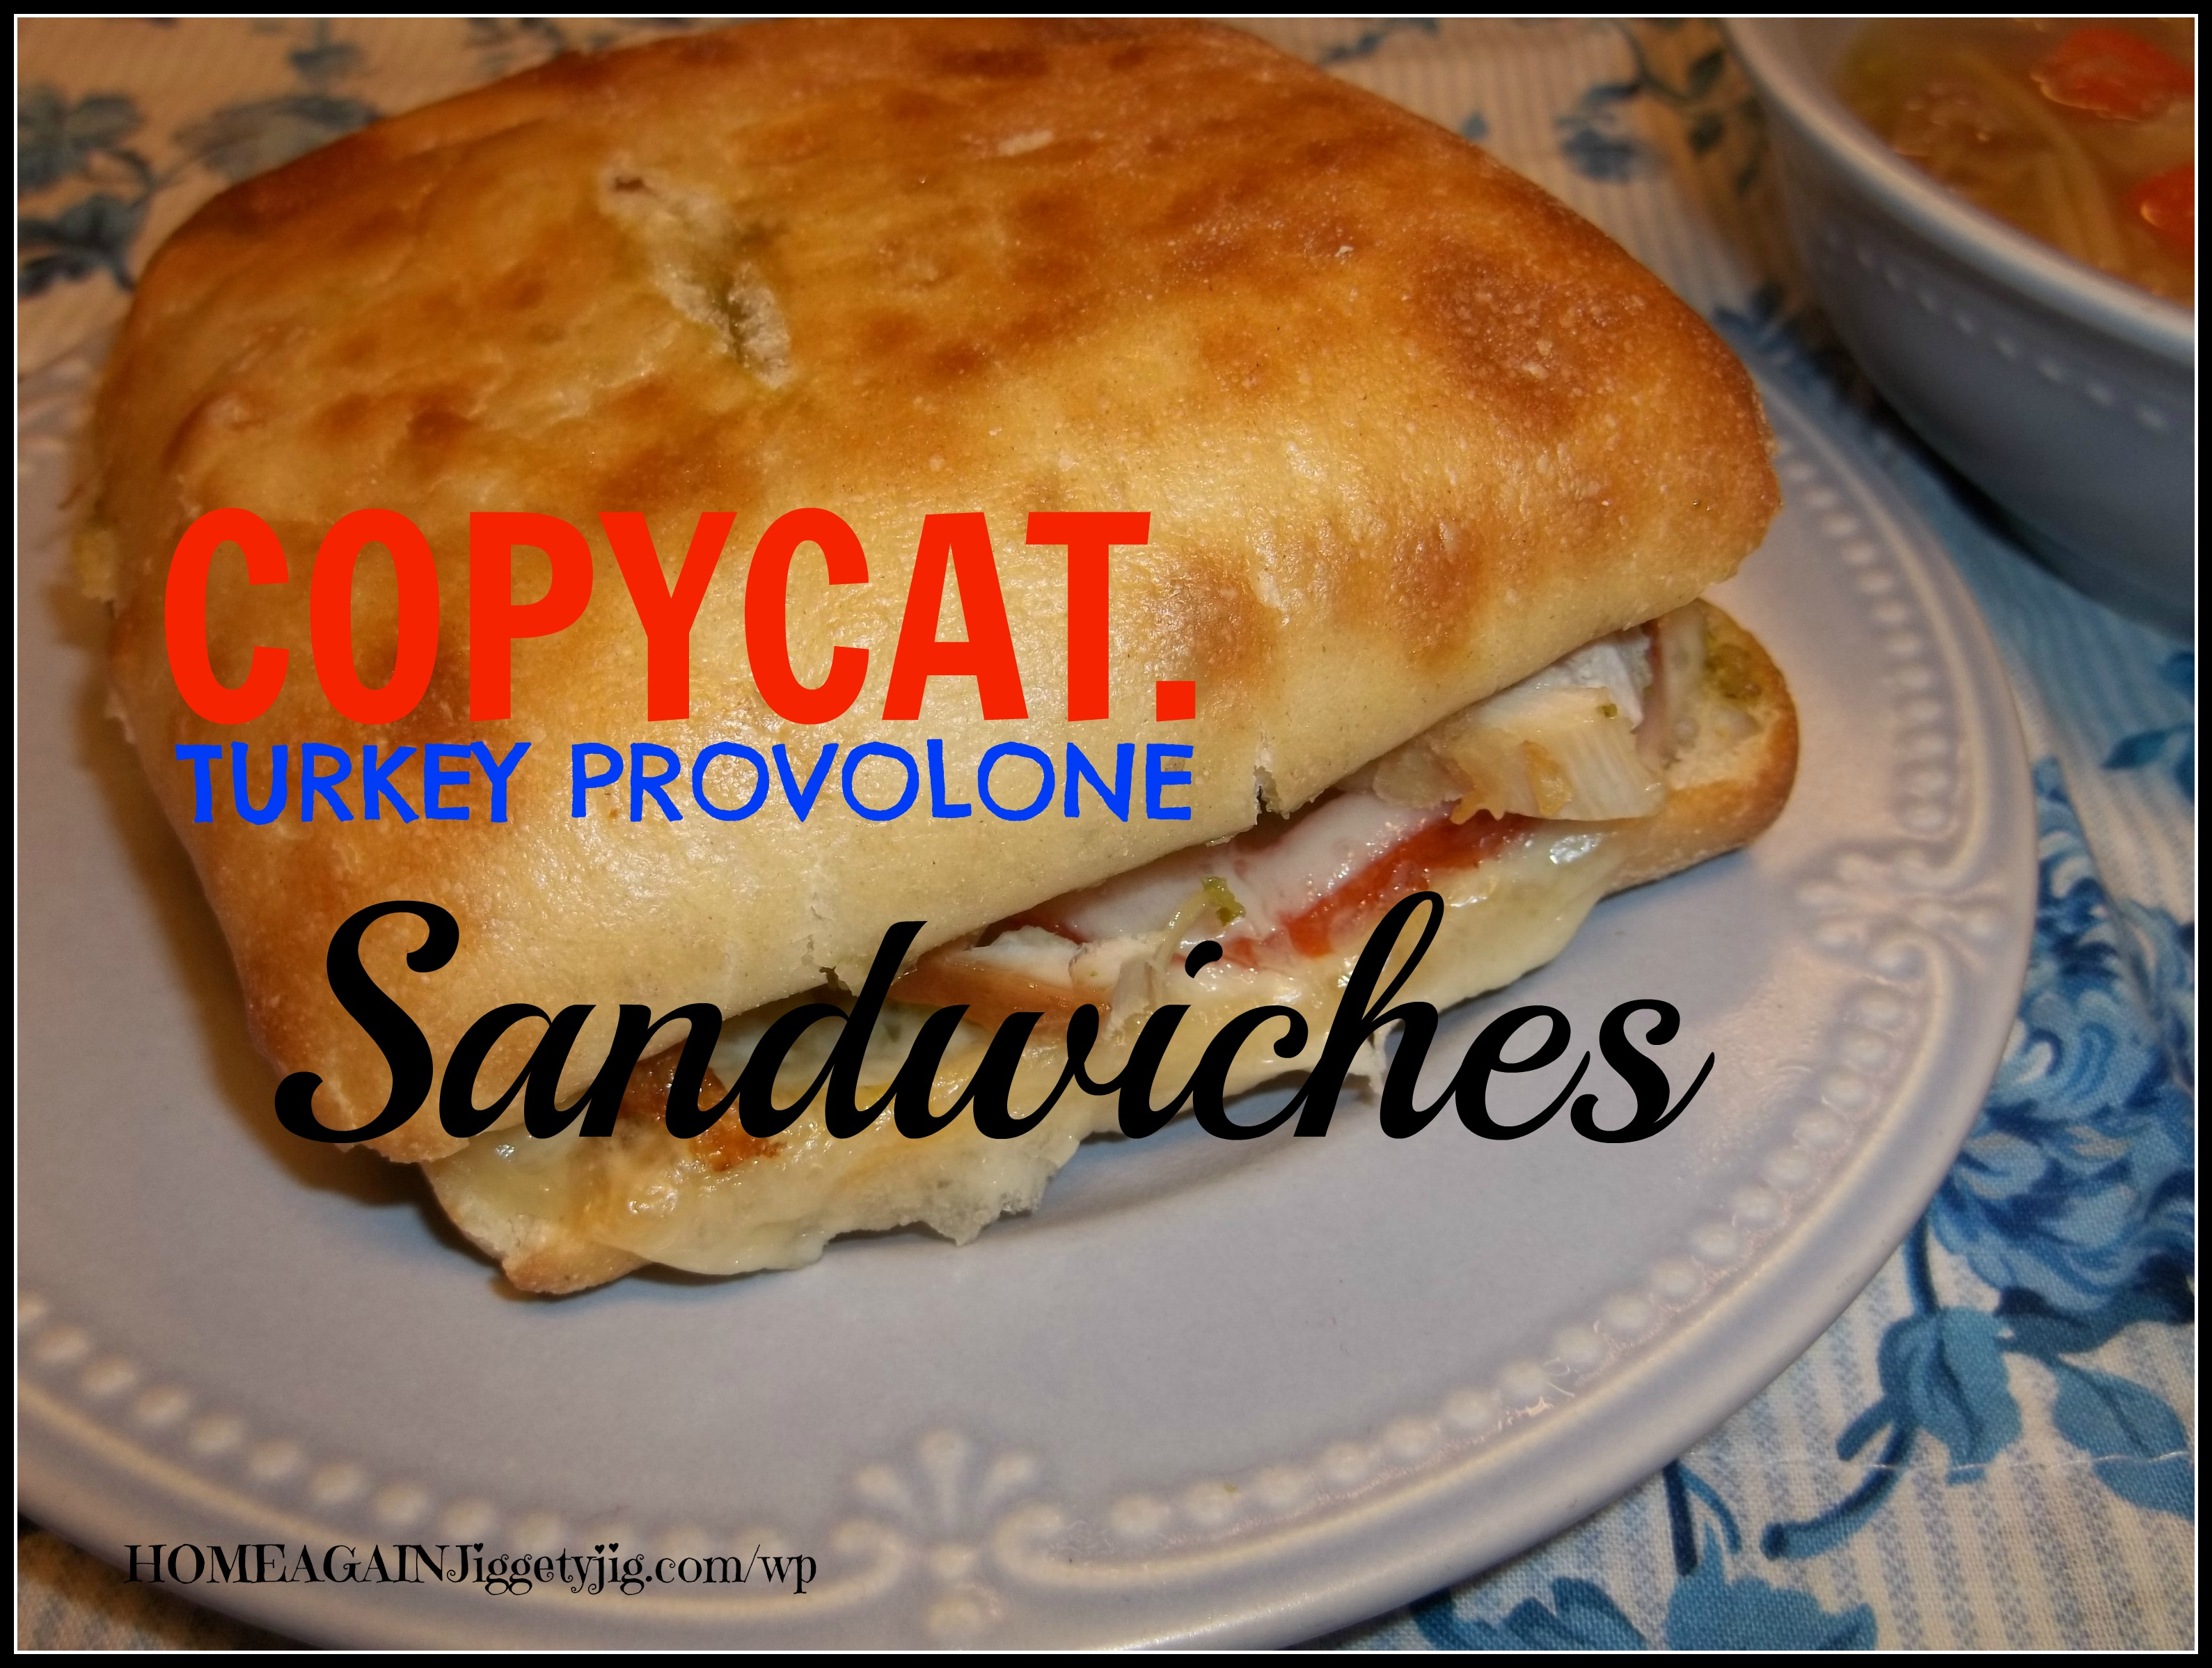 COPYCAT COSTCO HOT TURKEY PROVOLONE SANDWICH